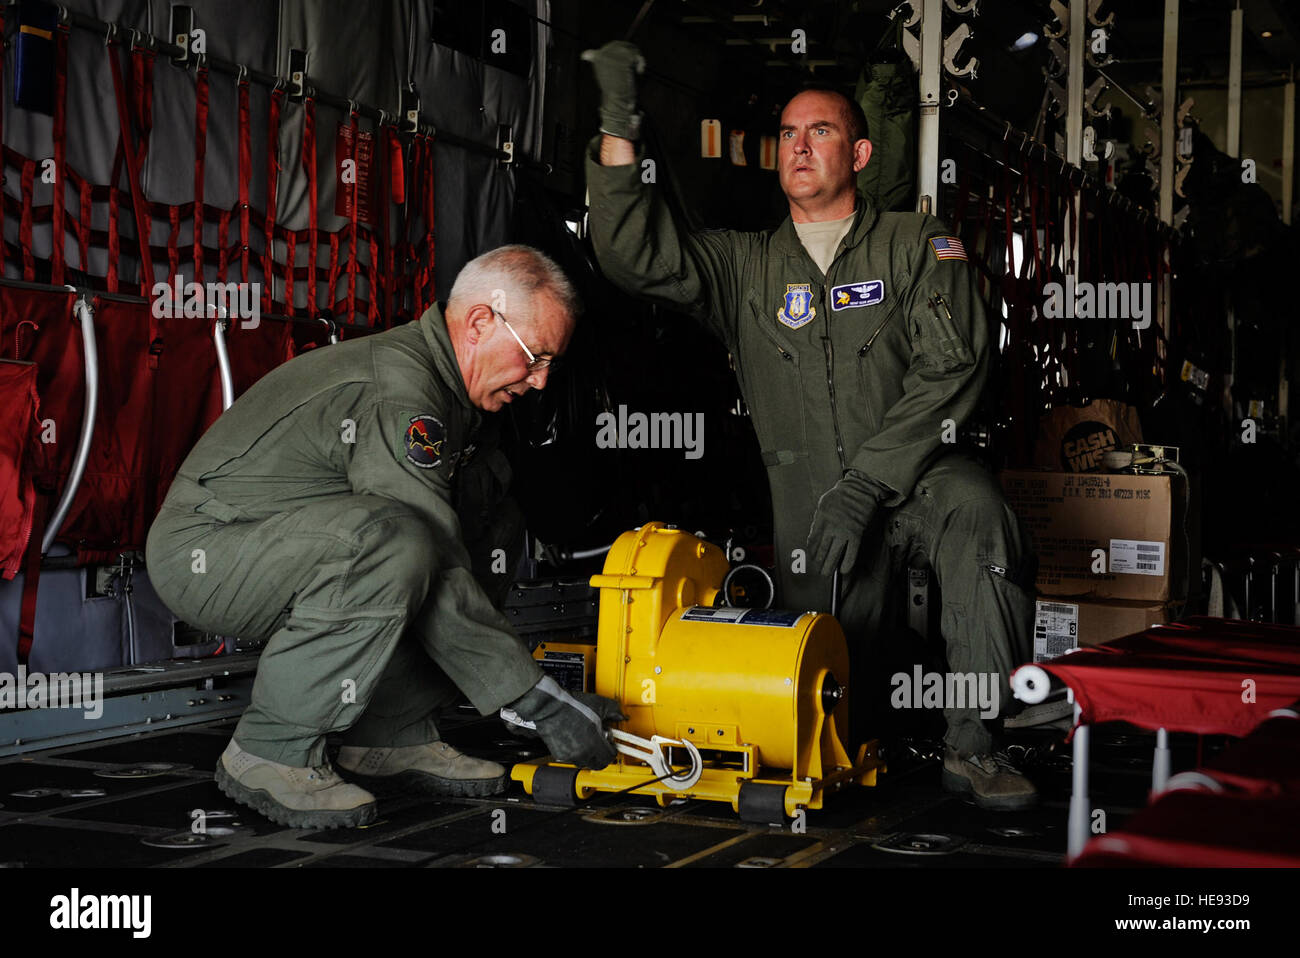 Senior Master Sgt. Dean Grothem, 934th Airlift Wing loadmaster, and Chief Master Sgt. Bill Wunderlin, 130th Rescue - Stock Image